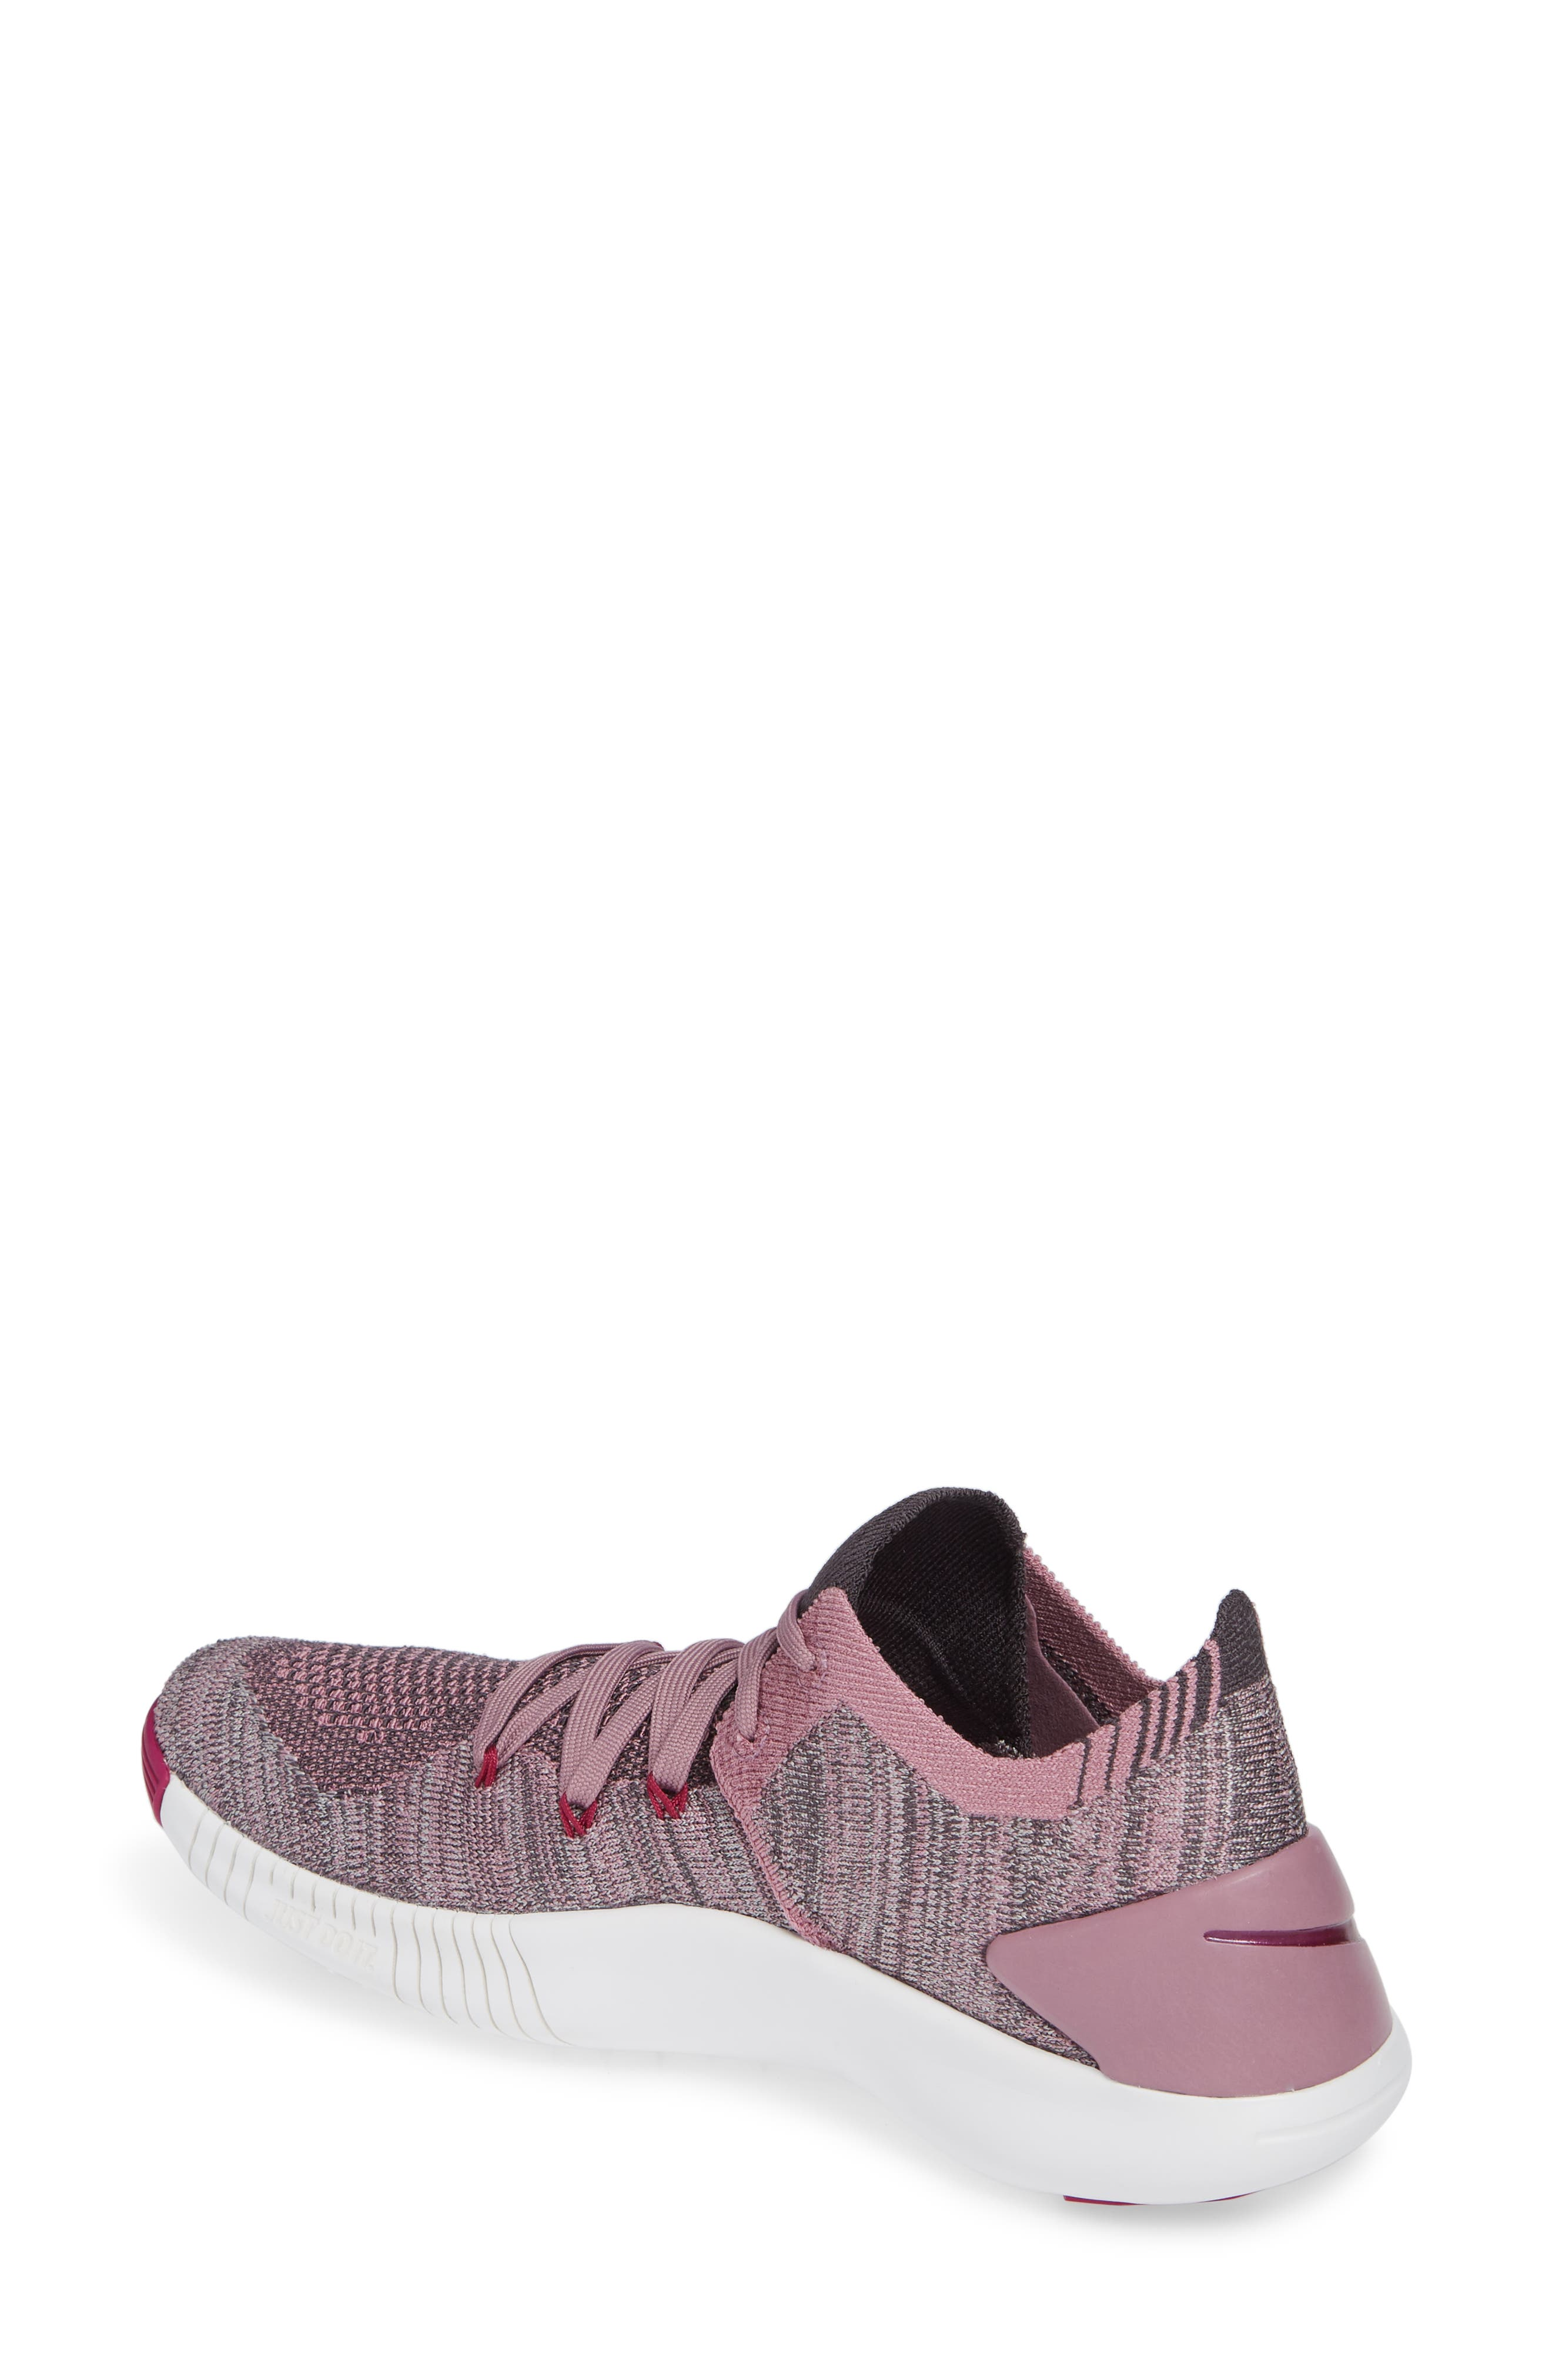 newest aae15 a3b8a For Women Nike Flyknit   Nordstrom